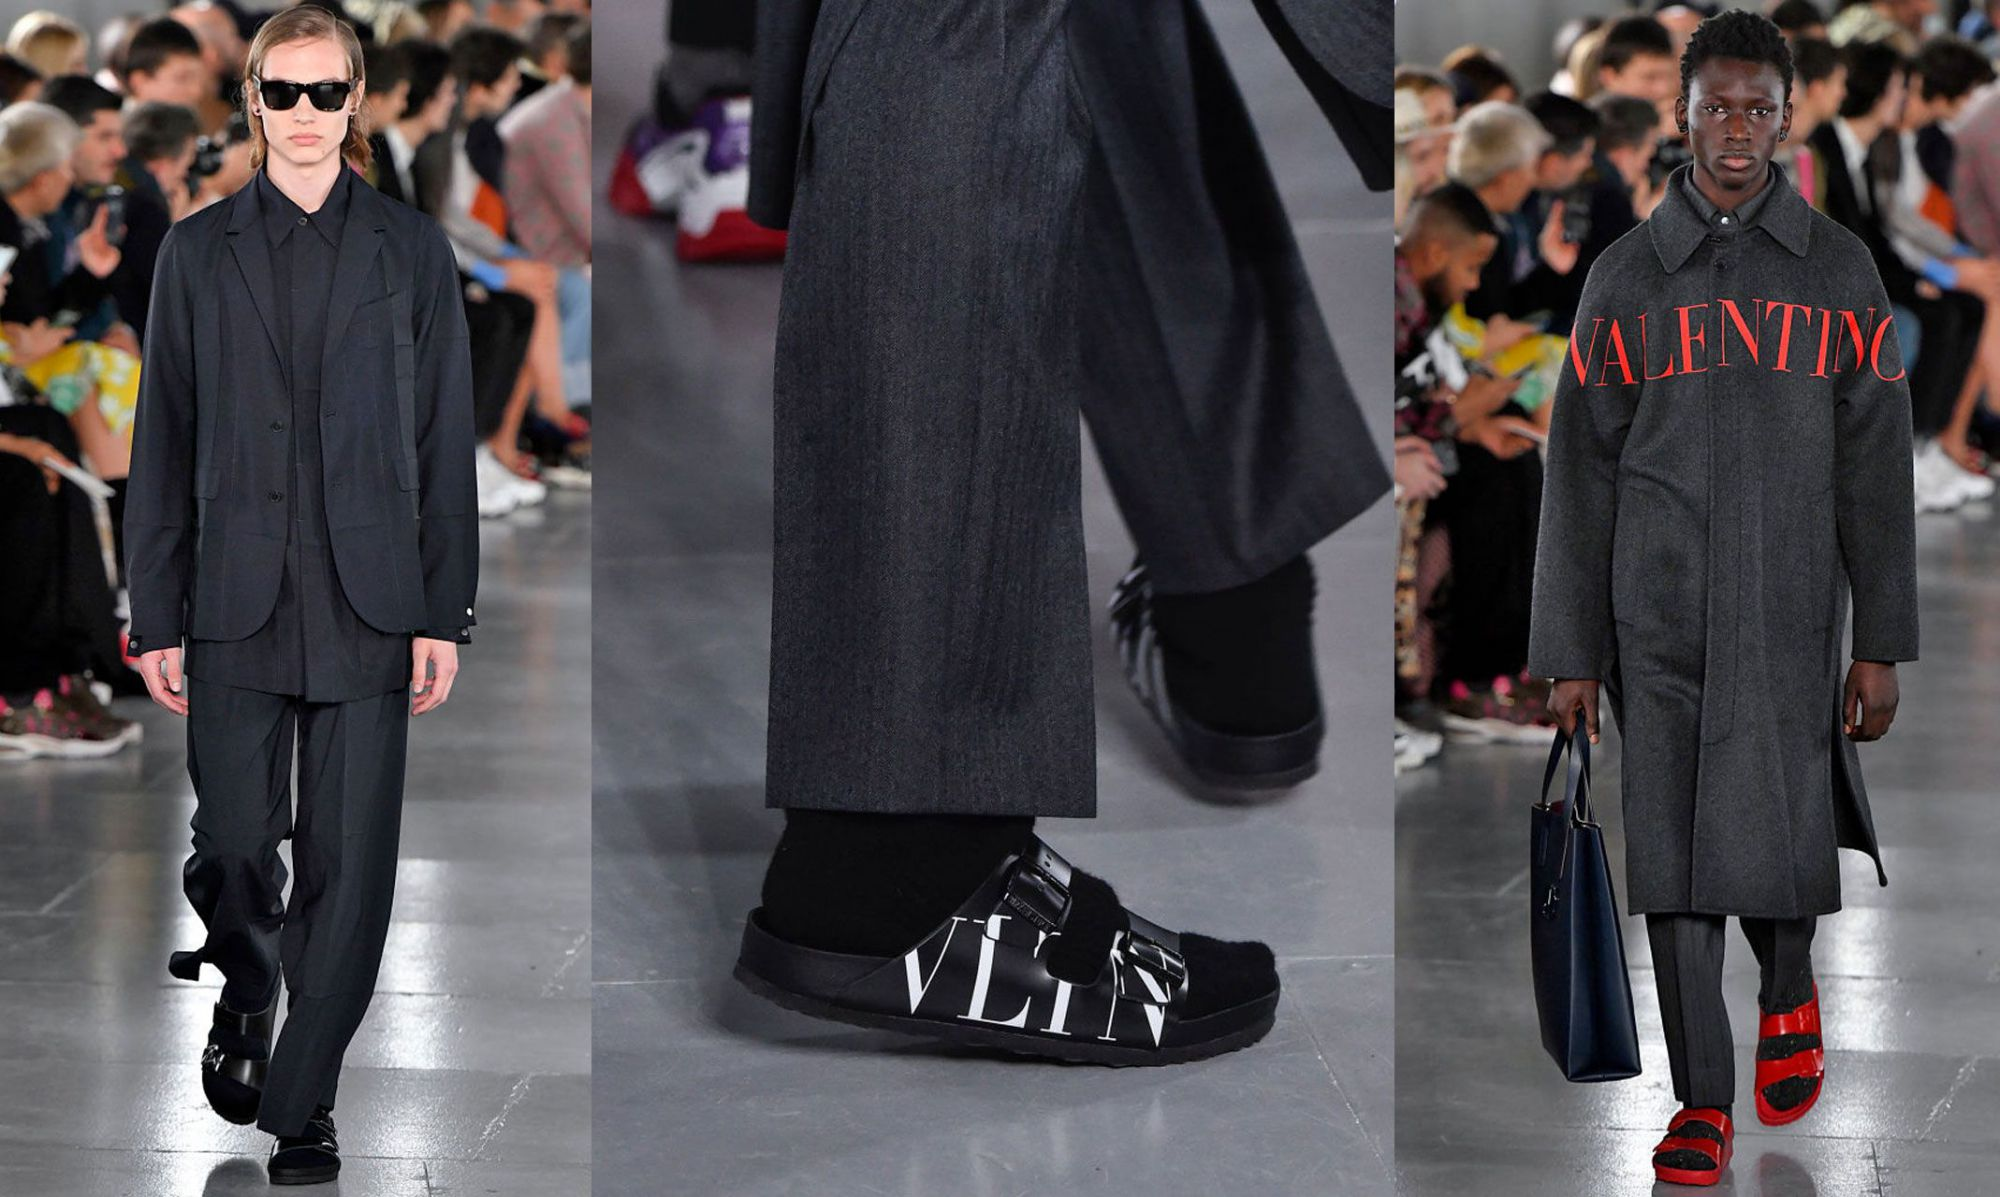 Where To Buy The Birkenstock By Valentino